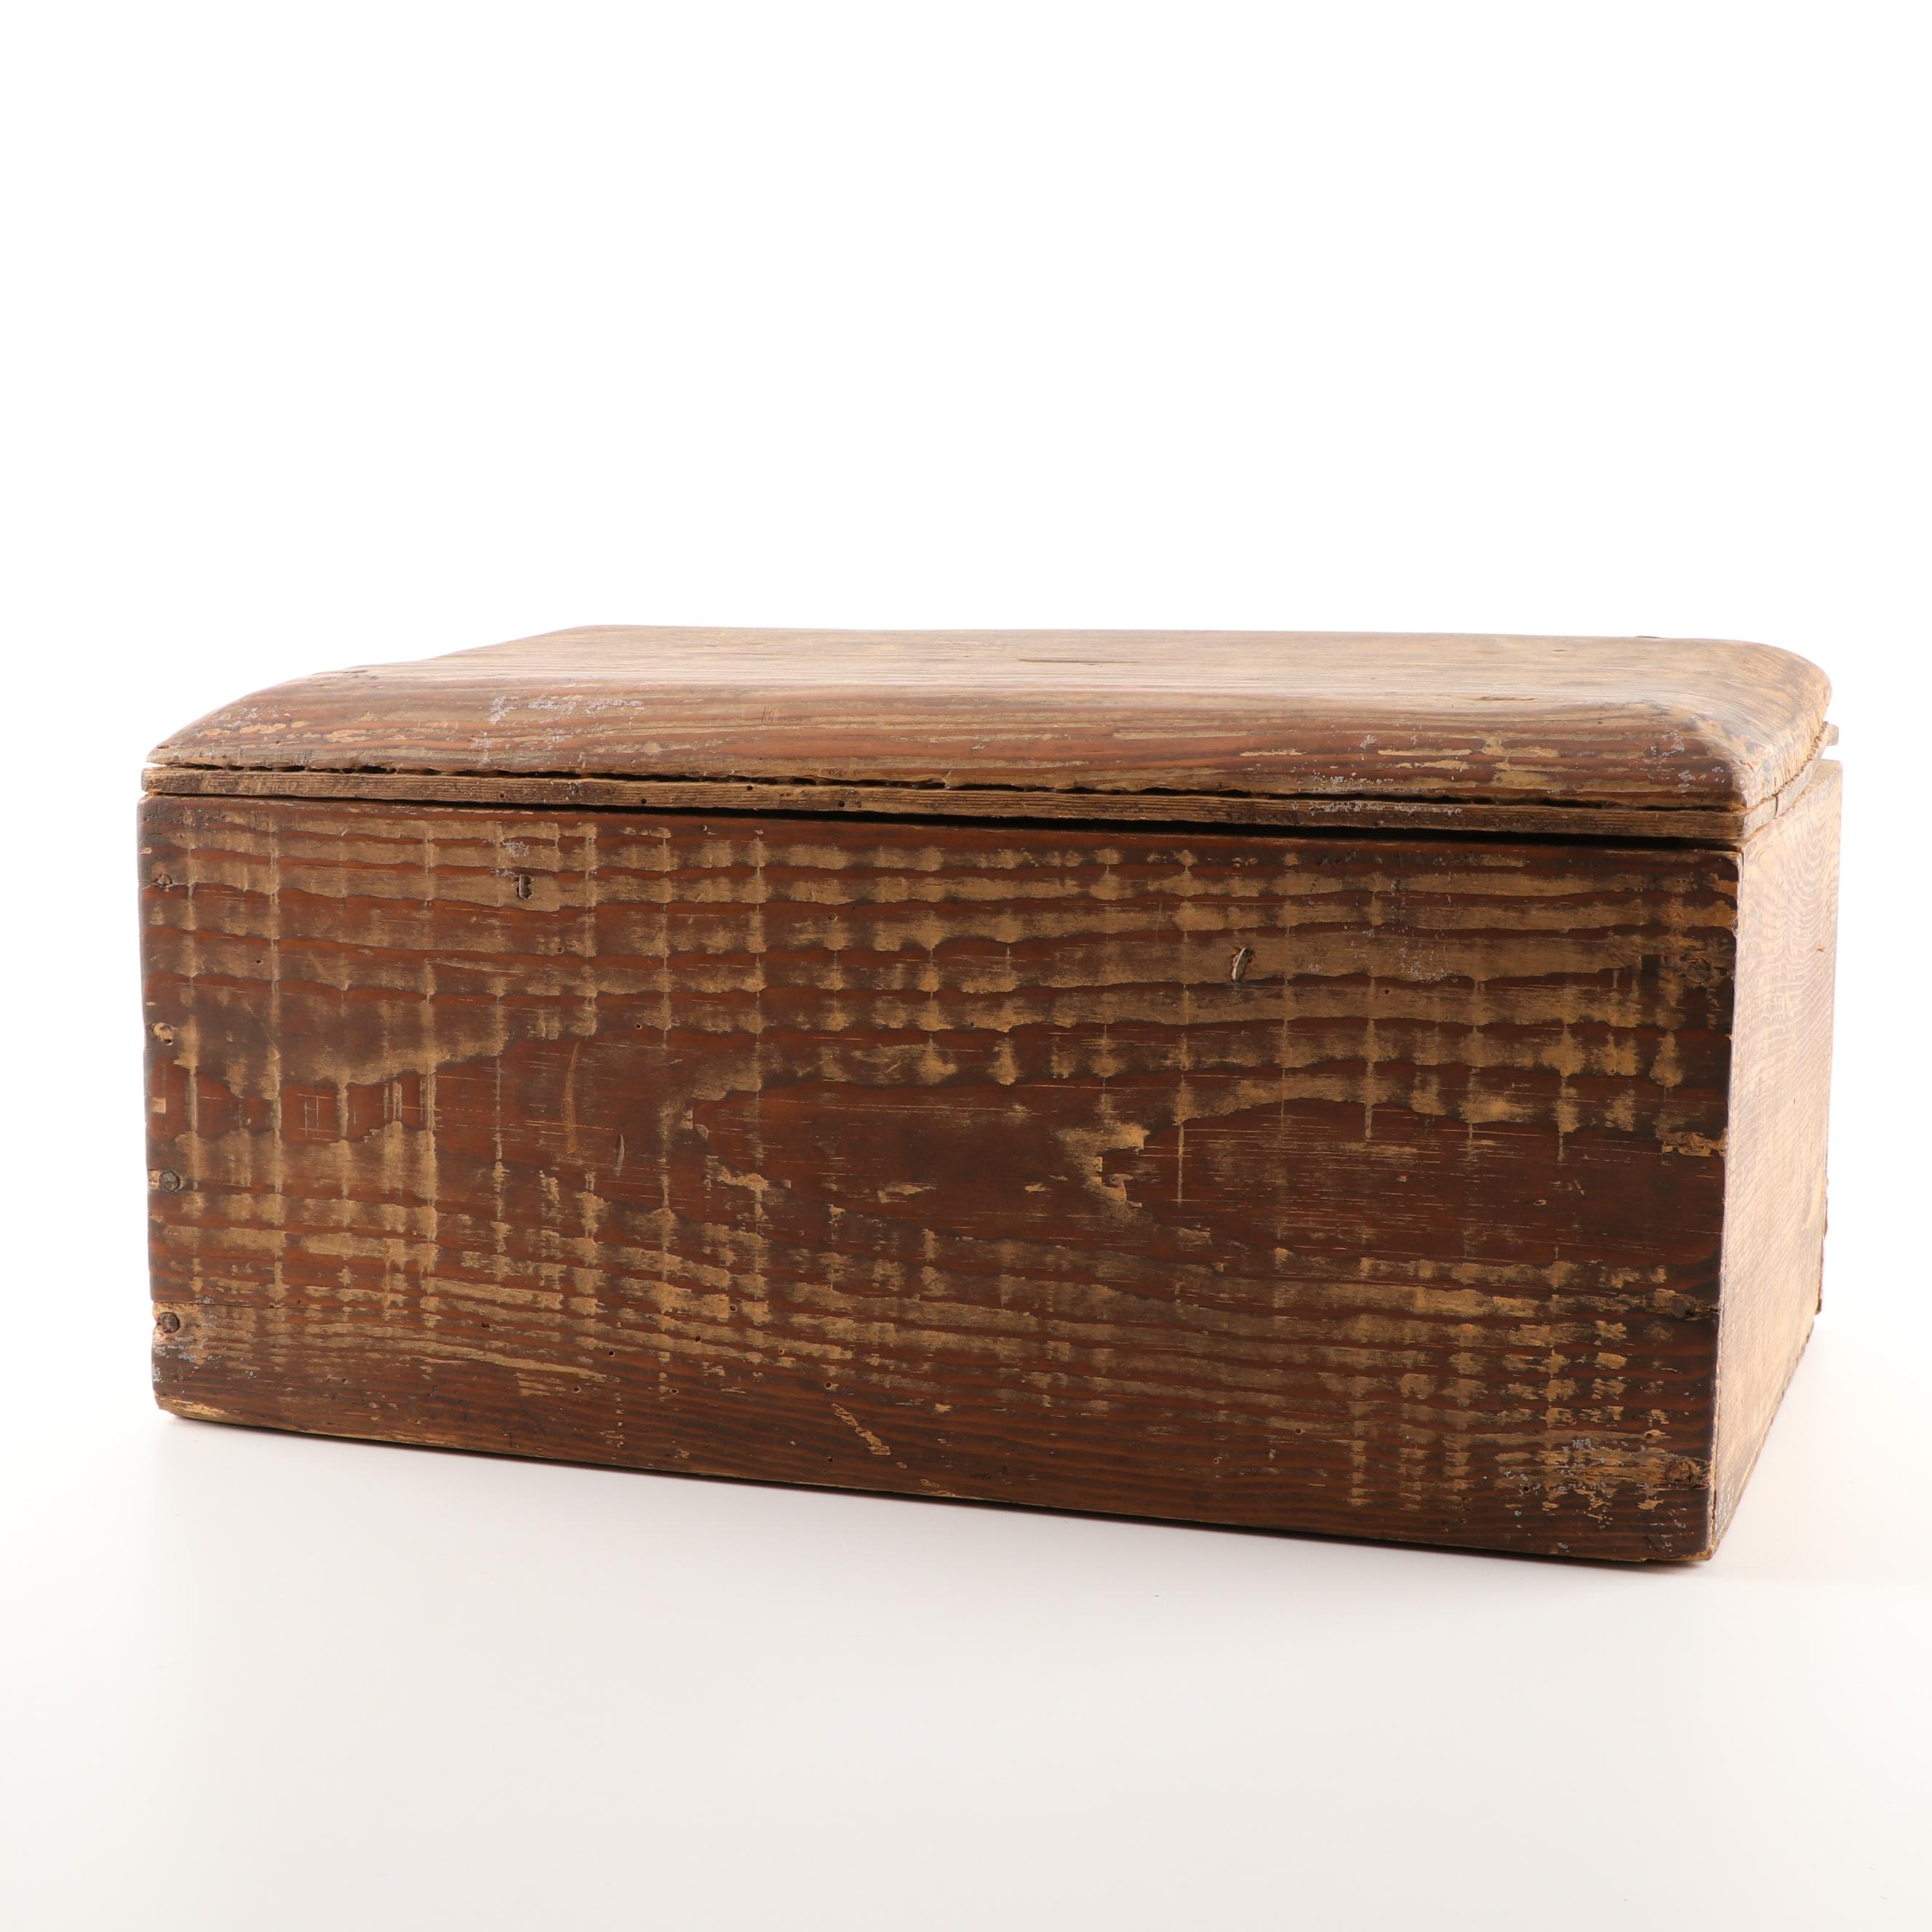 Handcrafted Pine Document Box, Early 20th Century